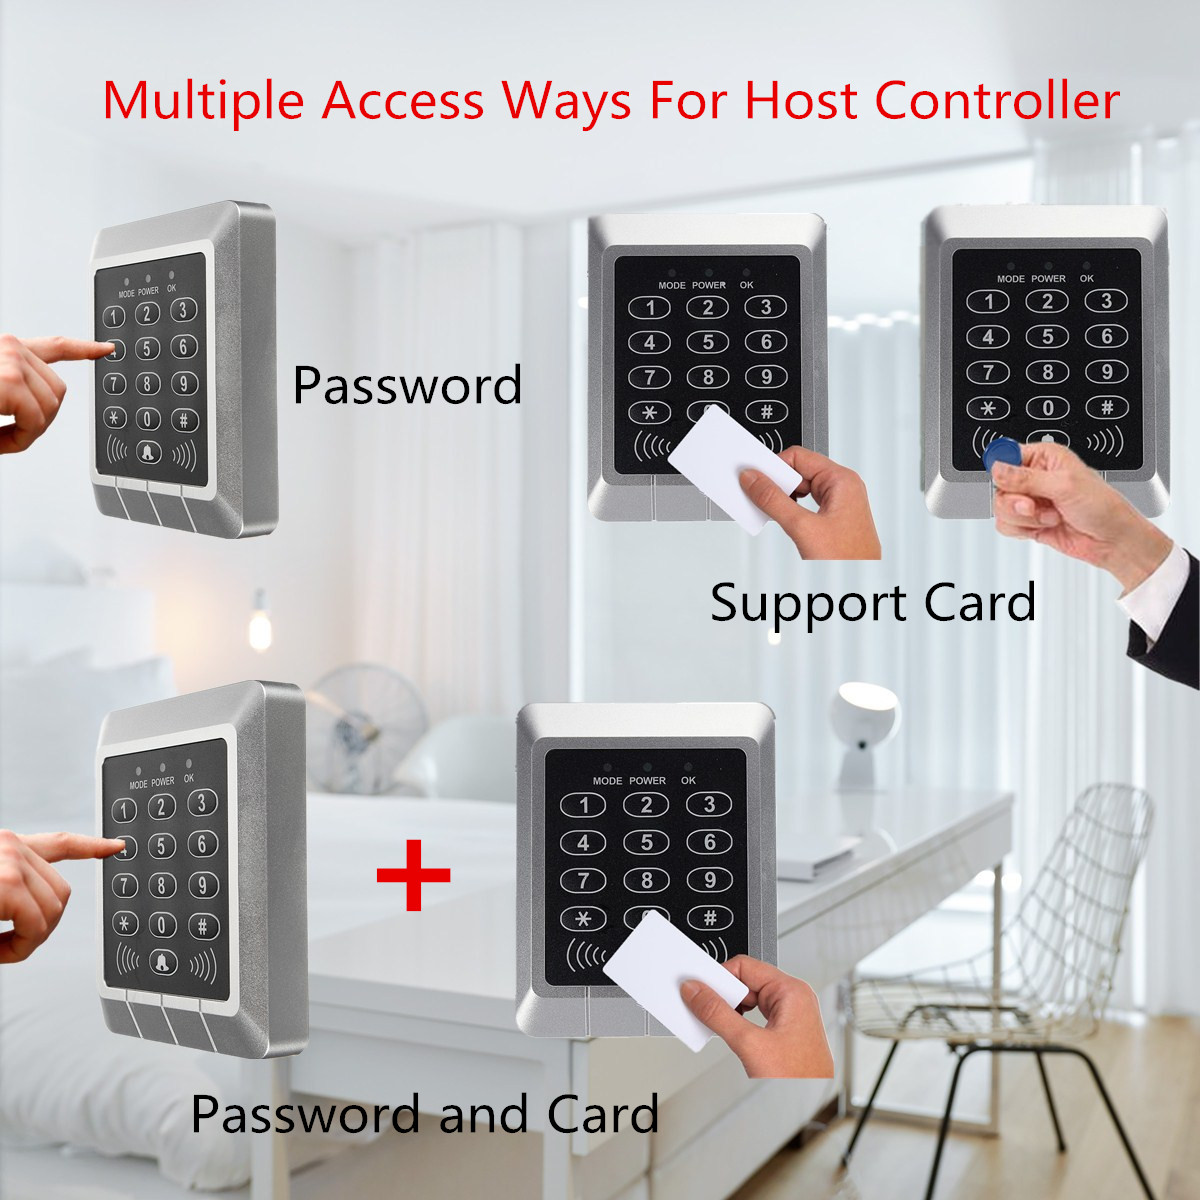 Host Controller+Electric Magnetic Lock+Keyfobs 125KHz RFID ID Card Keypad Doorbell Door Lock Security Access Control System KitHost Controller+Electric Magnetic Lock+Keyfobs 125KHz RFID ID Card Keypad Doorbell Door Lock Security Access Control System Kit